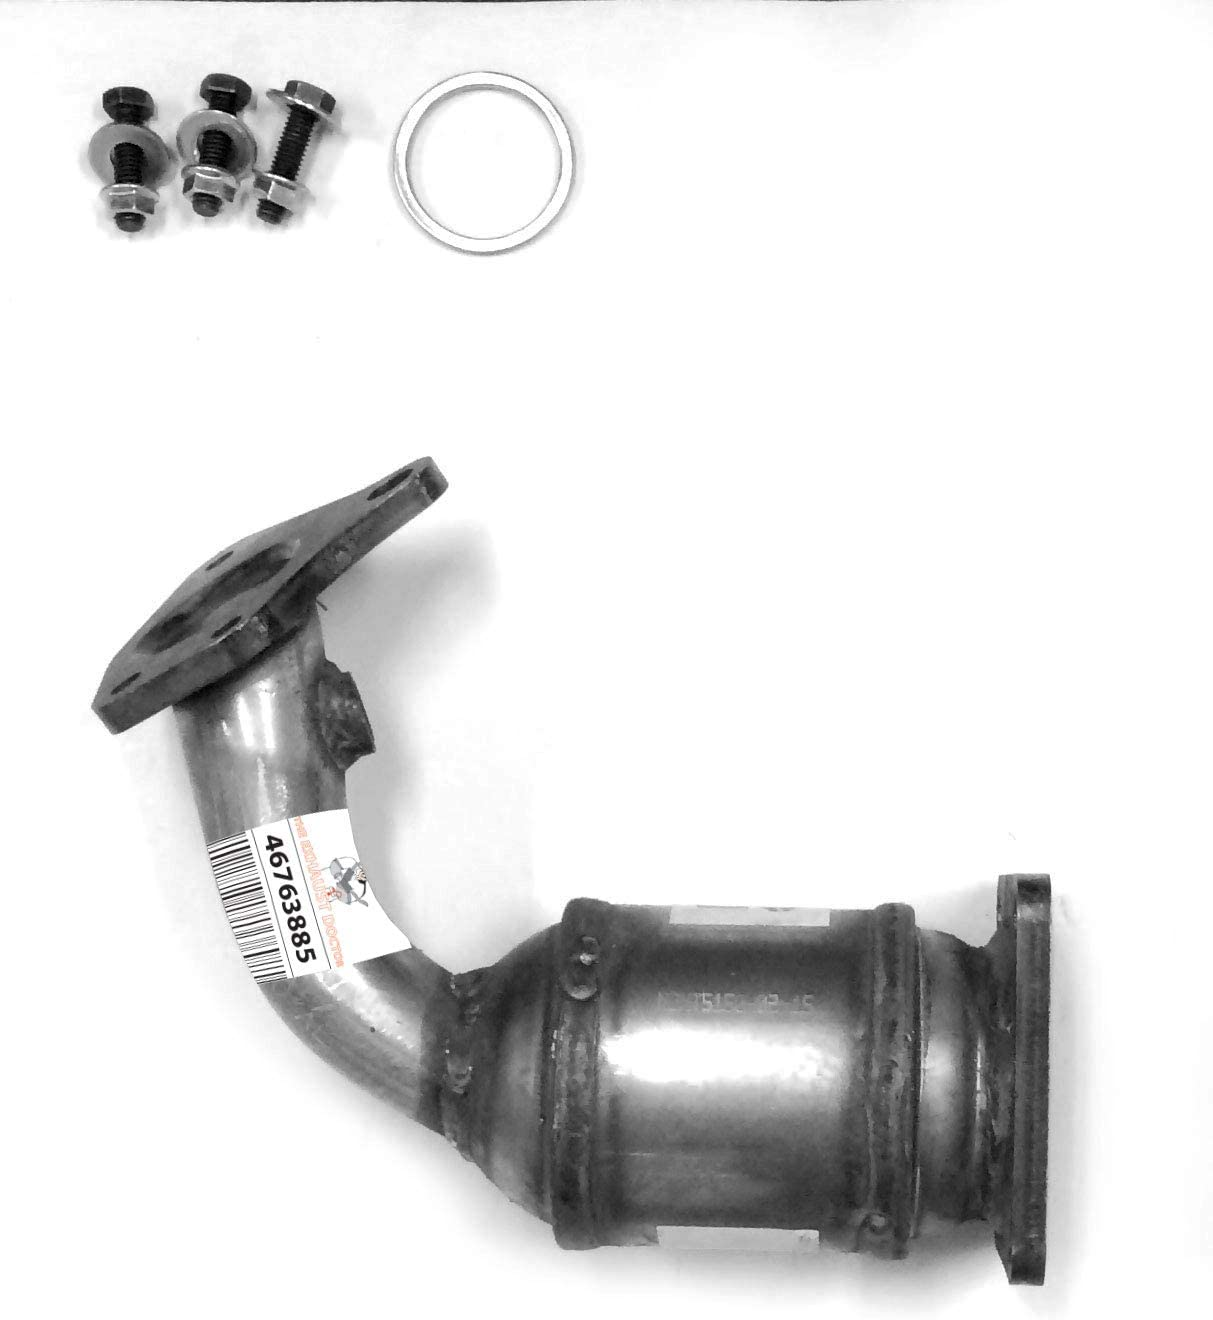 2009-2014 Nissan Murano 3.5L BANK 1 Catalytic Converter TED Direct-Fit Catalytic Converter Fits